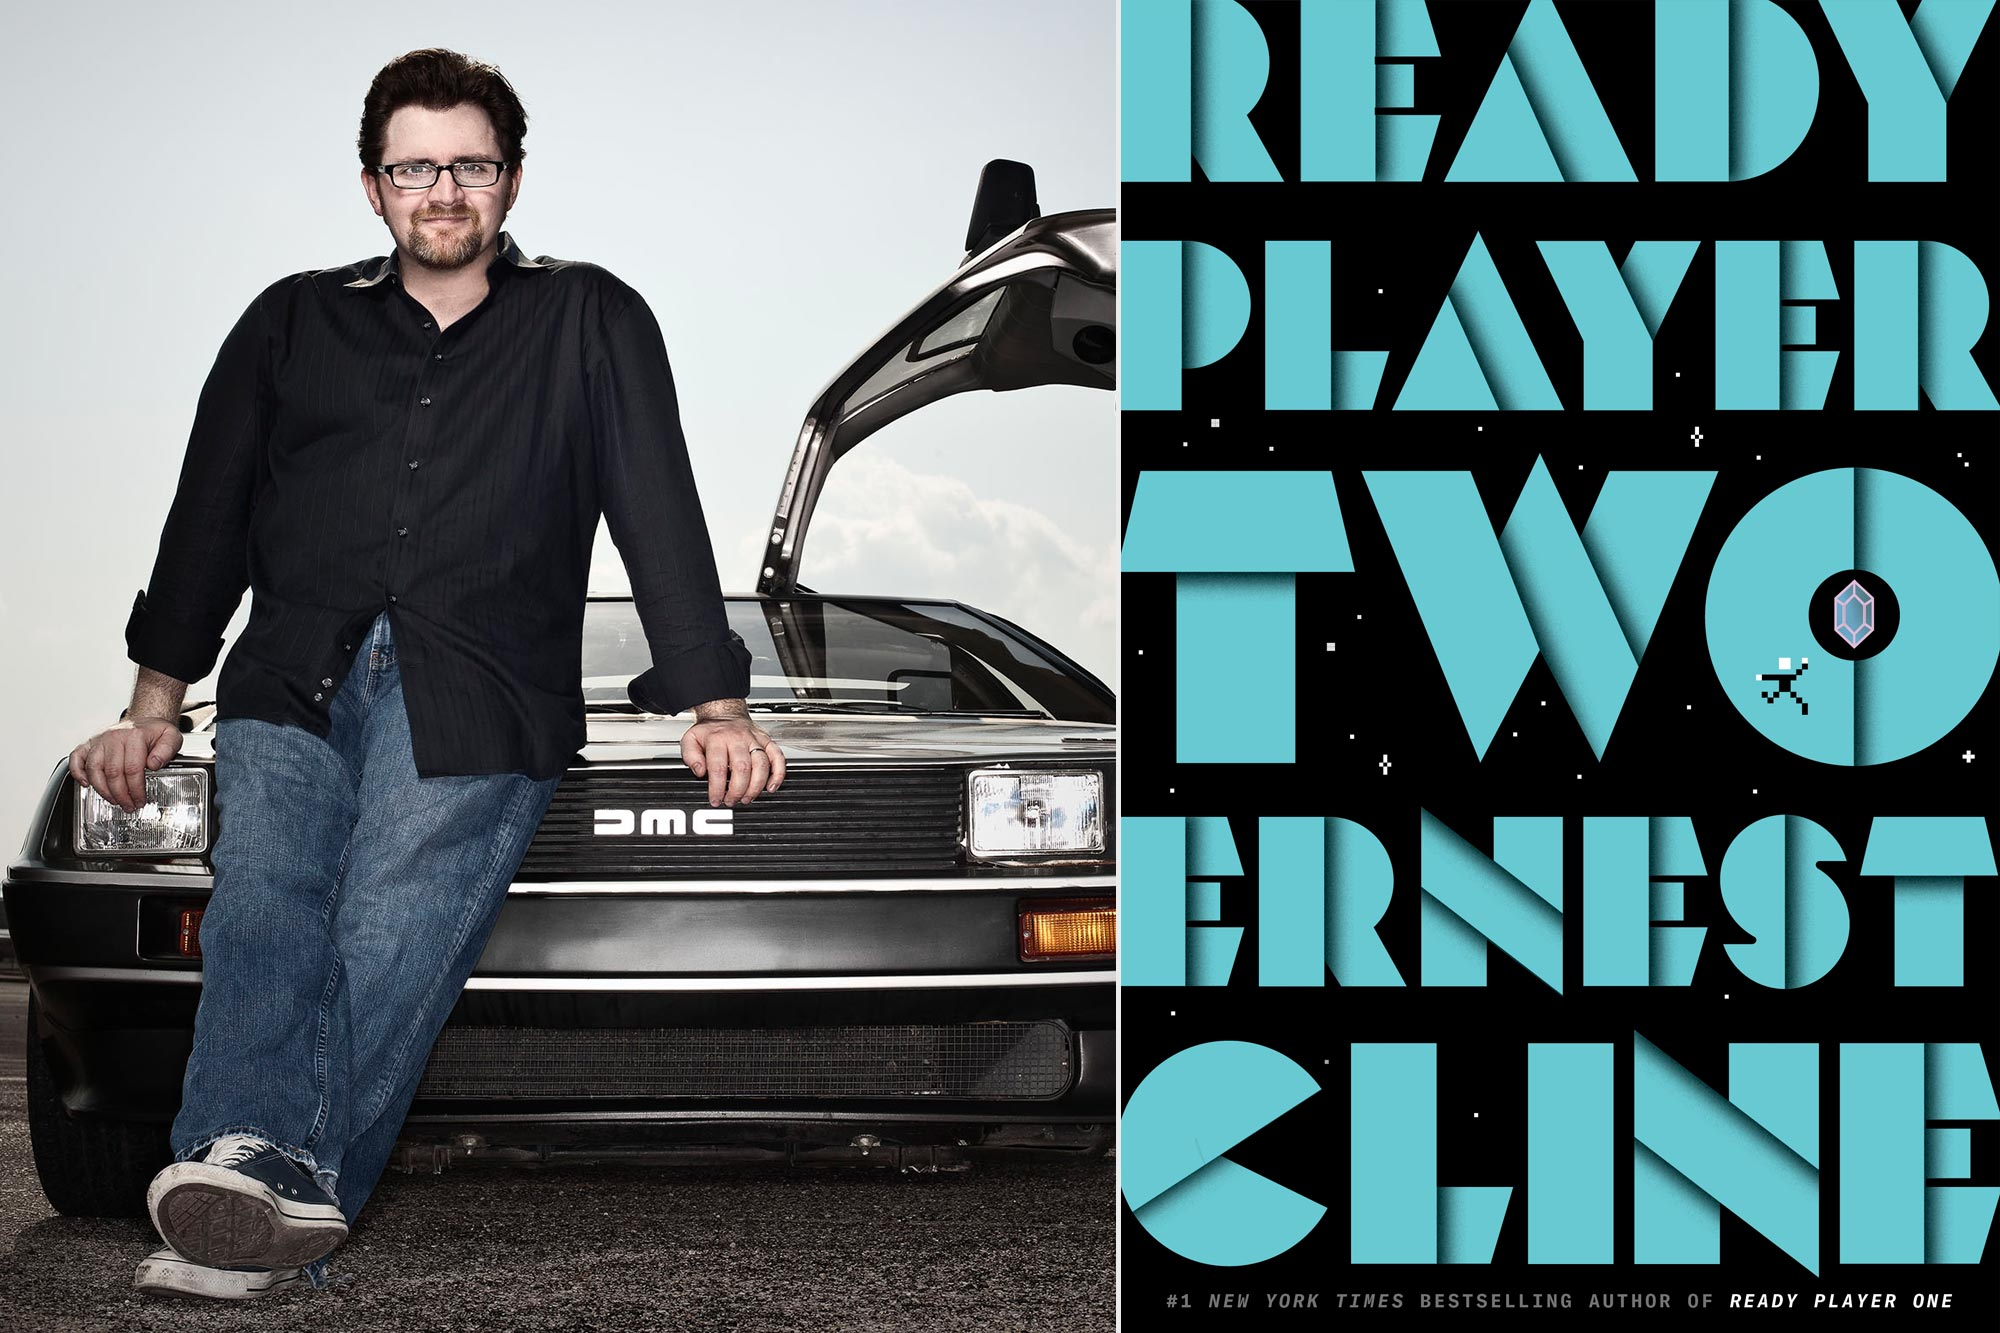 All The Details On The Ready Player Two Panel At New York Comic Con Ew Com